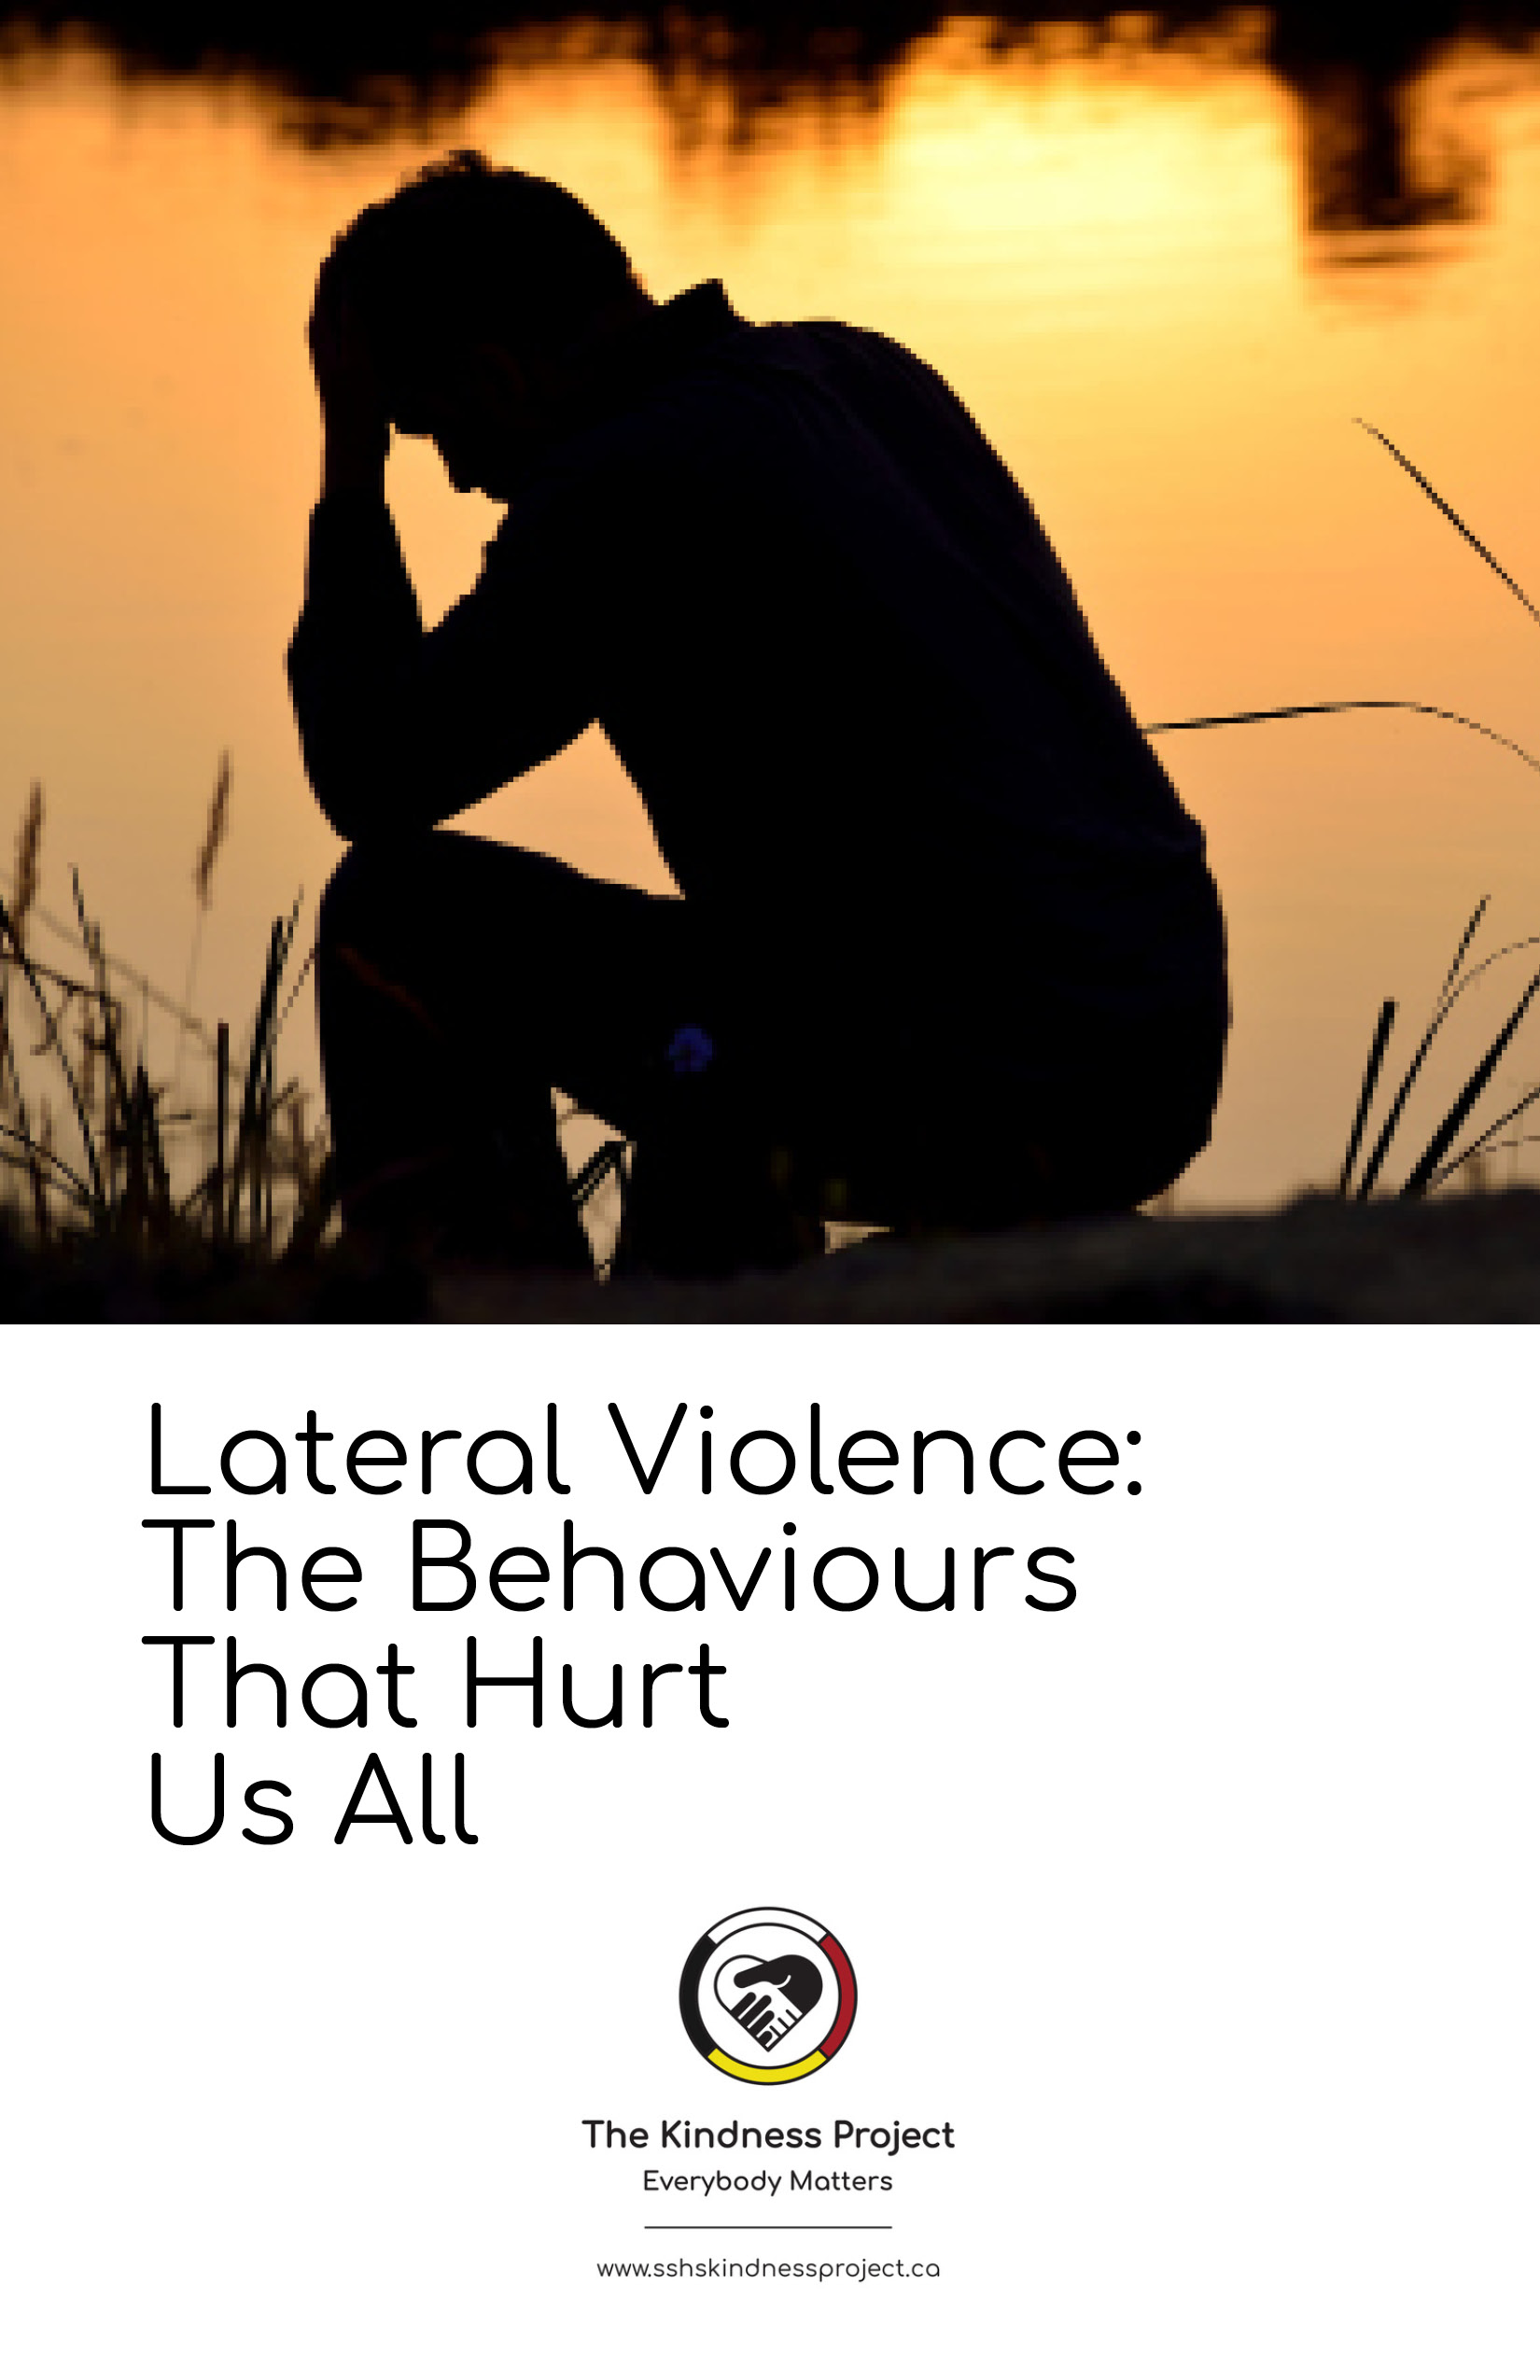 Lateral Violence brochure for Clubcard